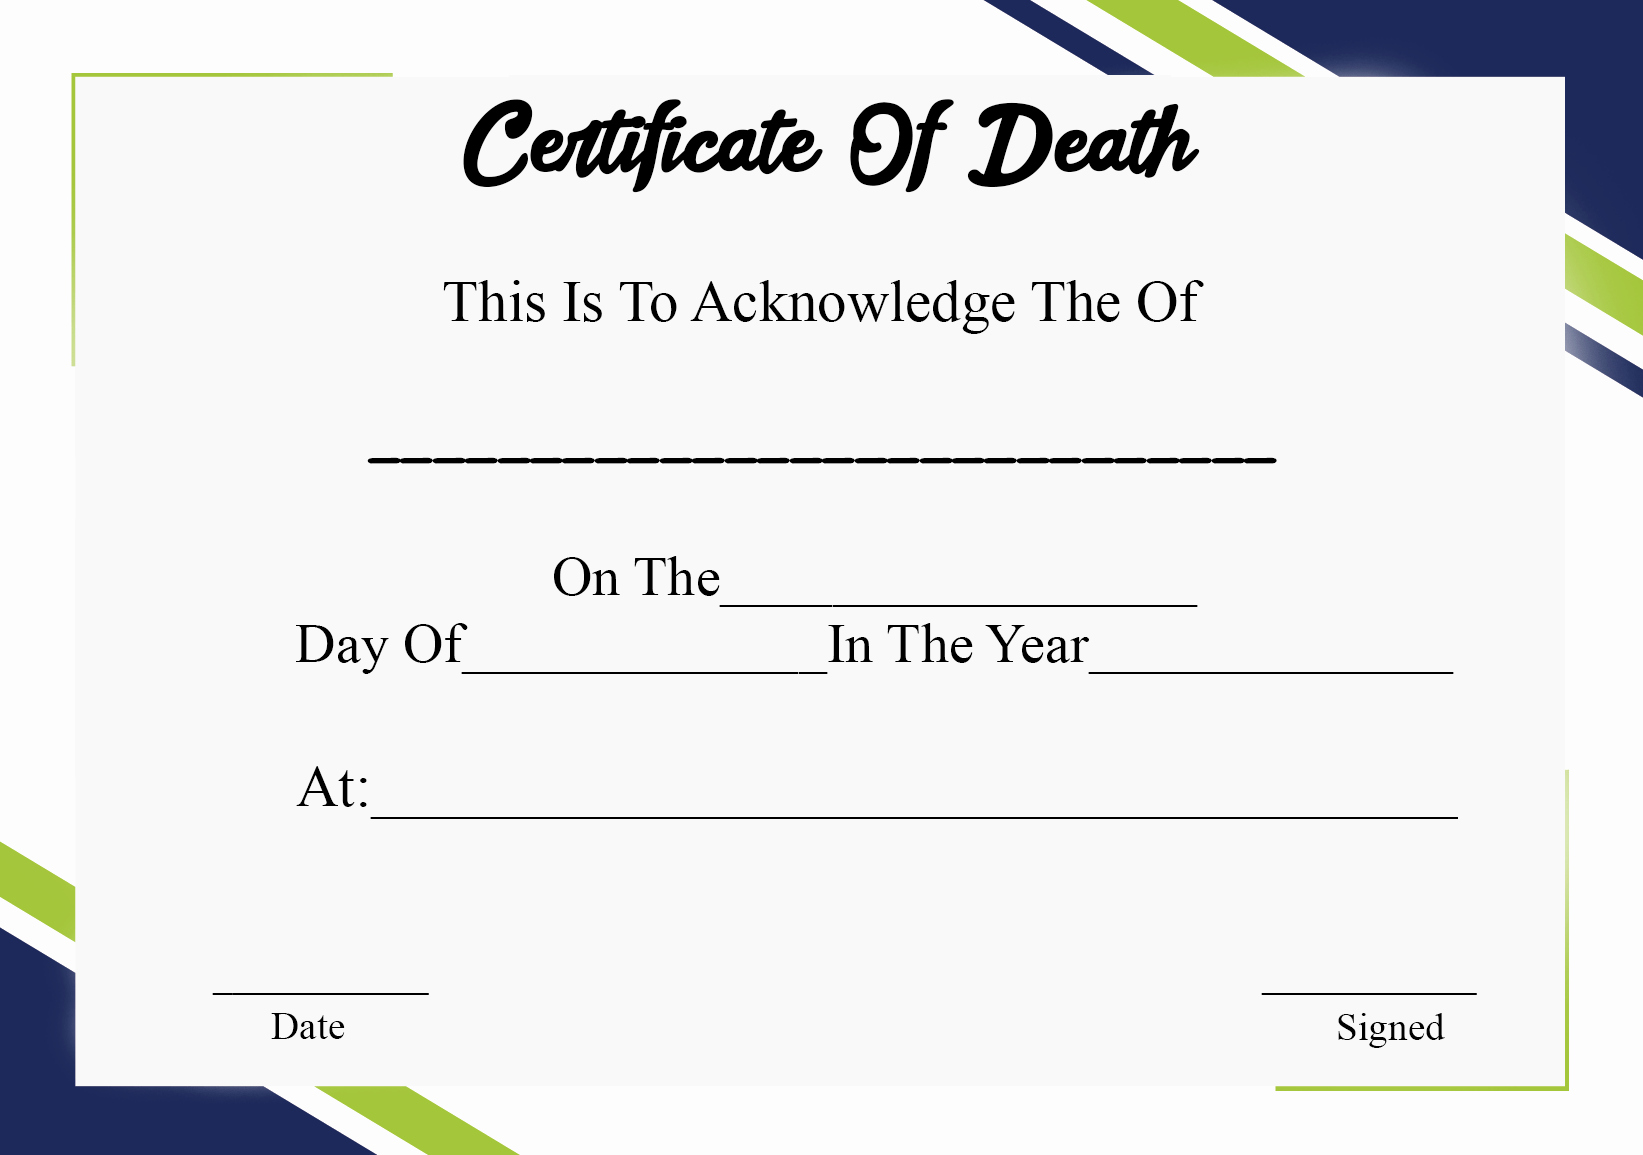 Blank Death Certificate Template Awesome 5 Printable Certificate Death Templates with Samples